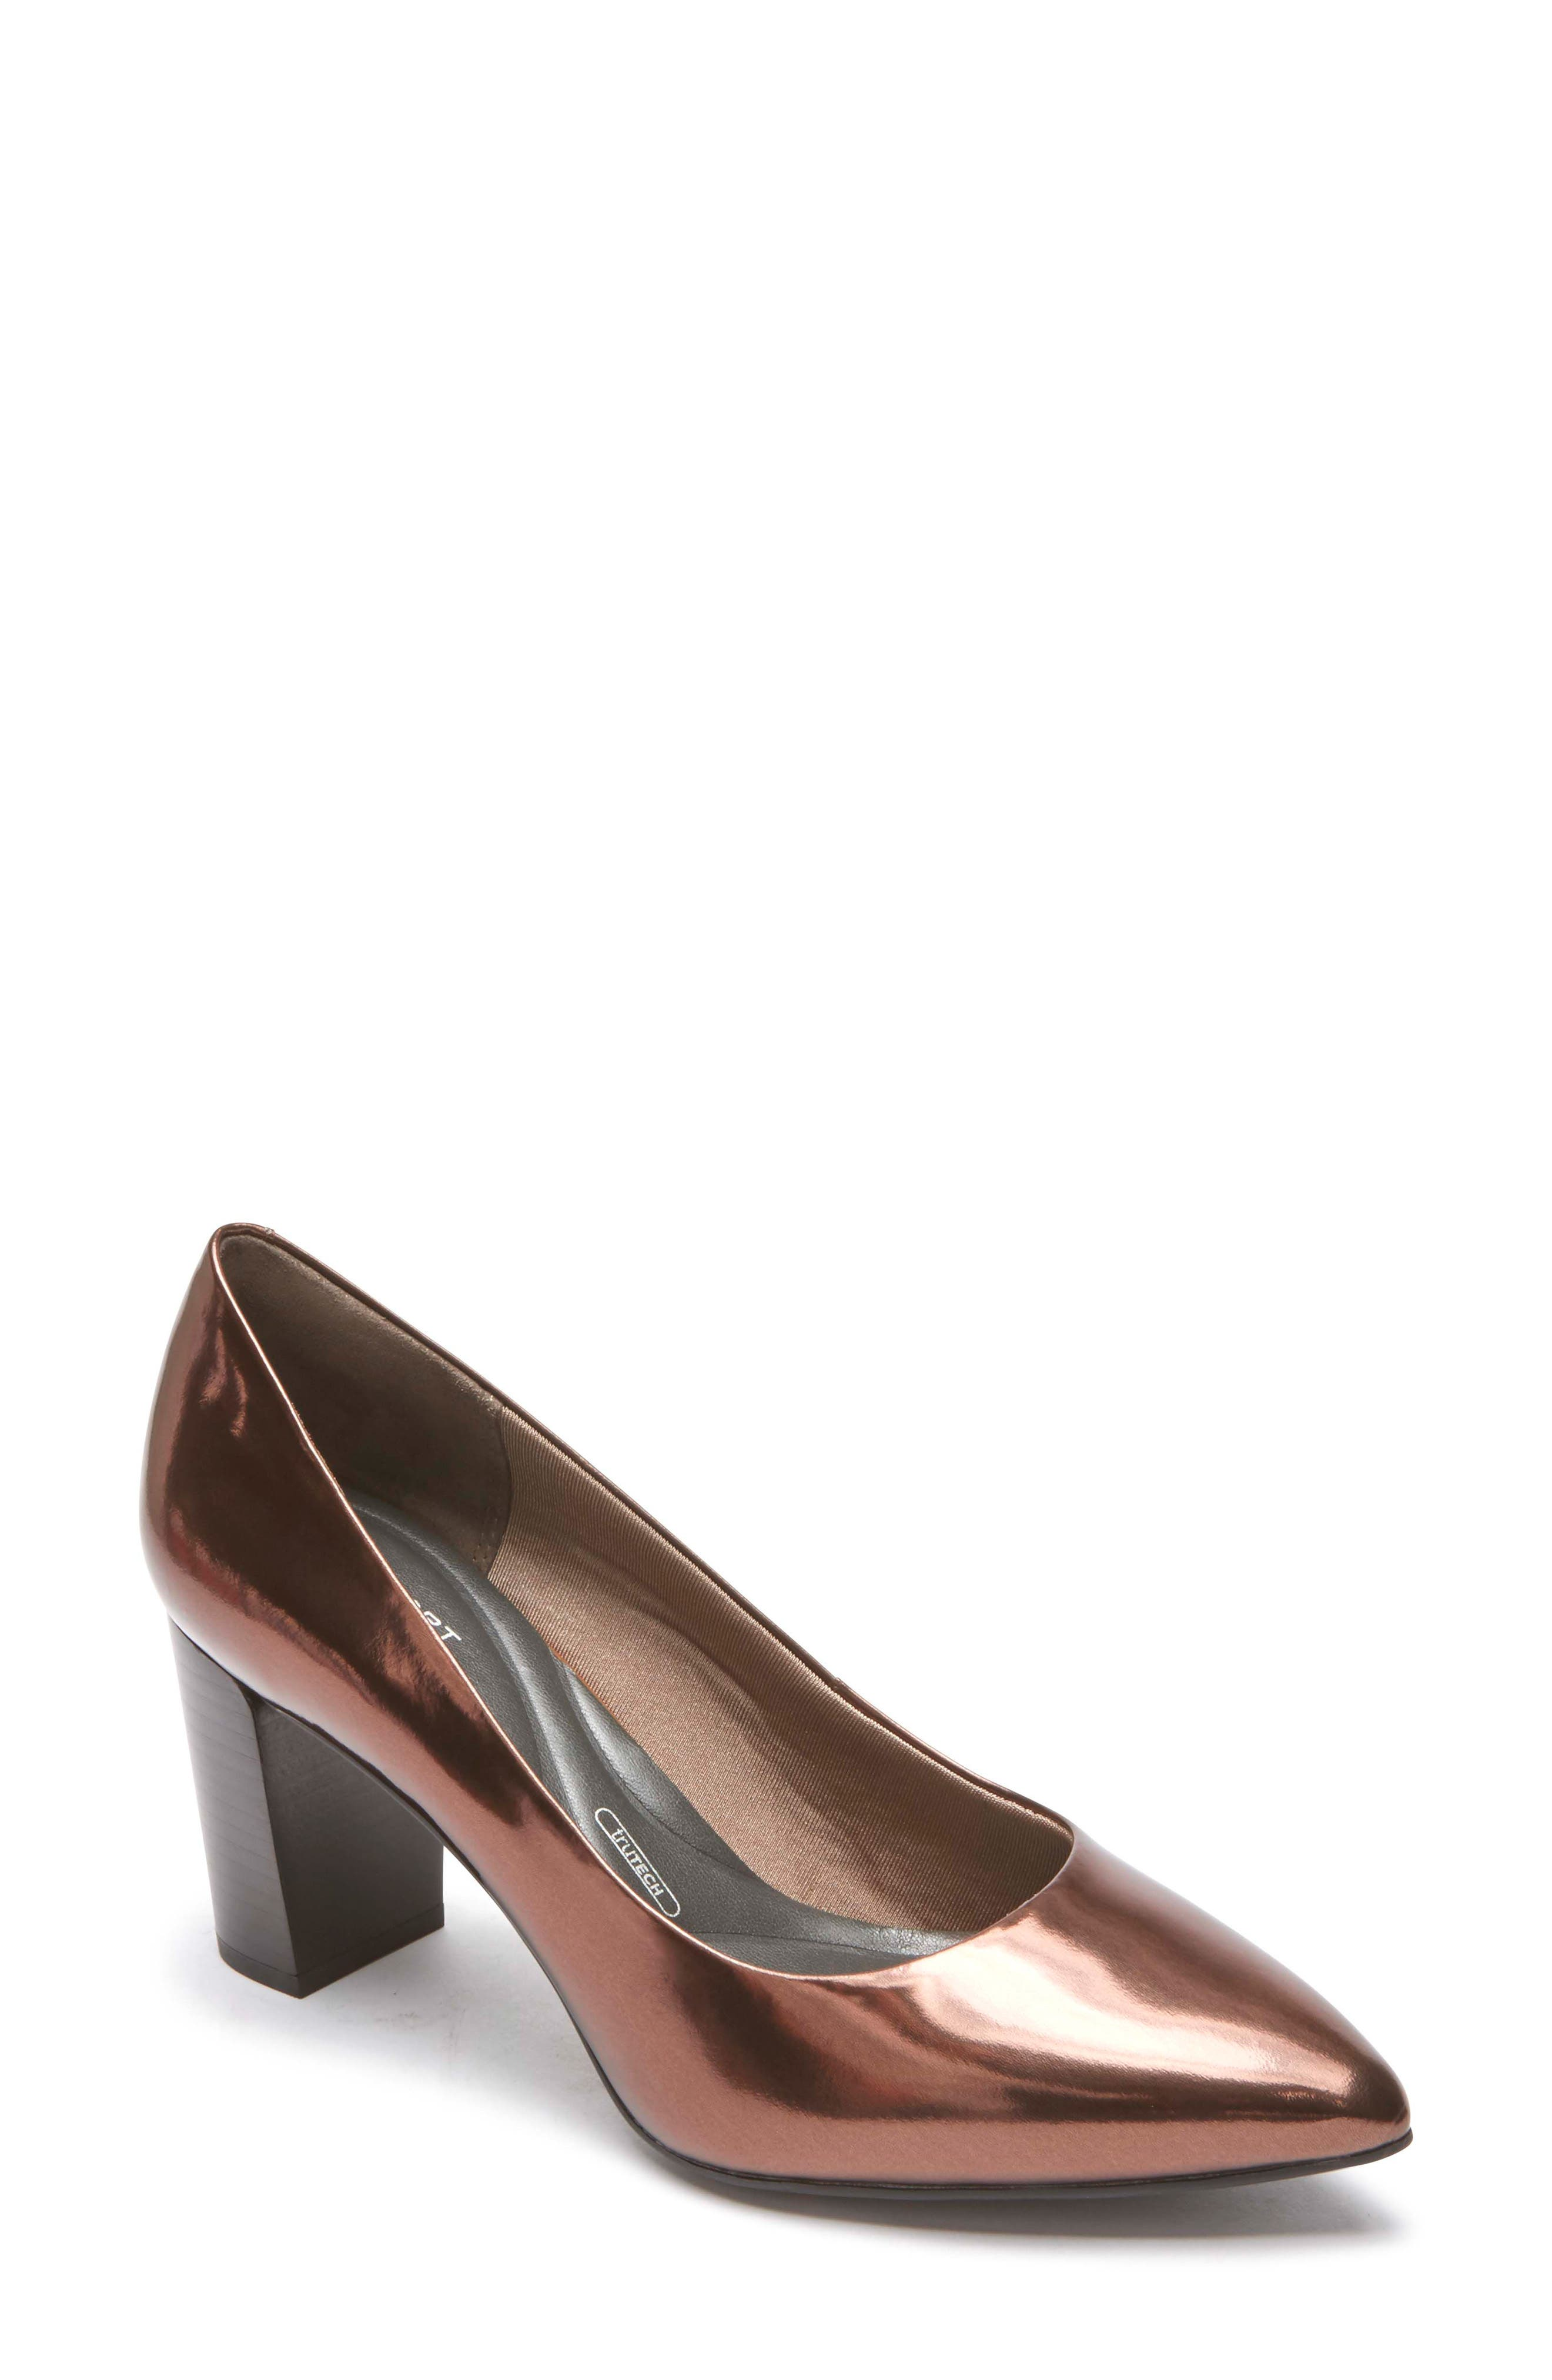 Total Motion Violina Luxe Pointy Toe Pump,                         Main,                         color, BRONZE PATENT LEATHER